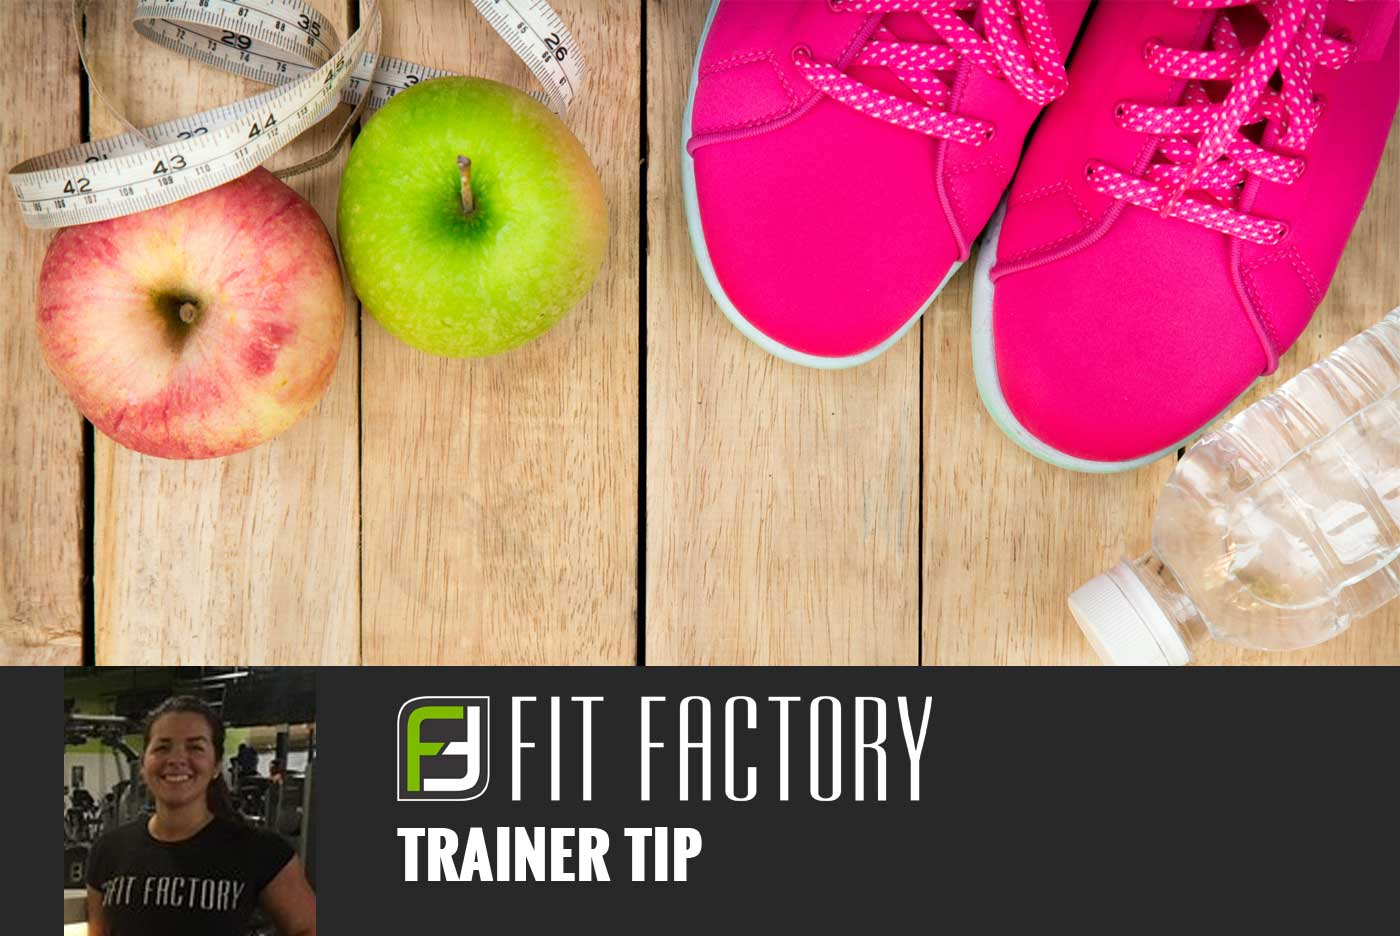 Trainer Tip: Stay Consistent with diet and exercise